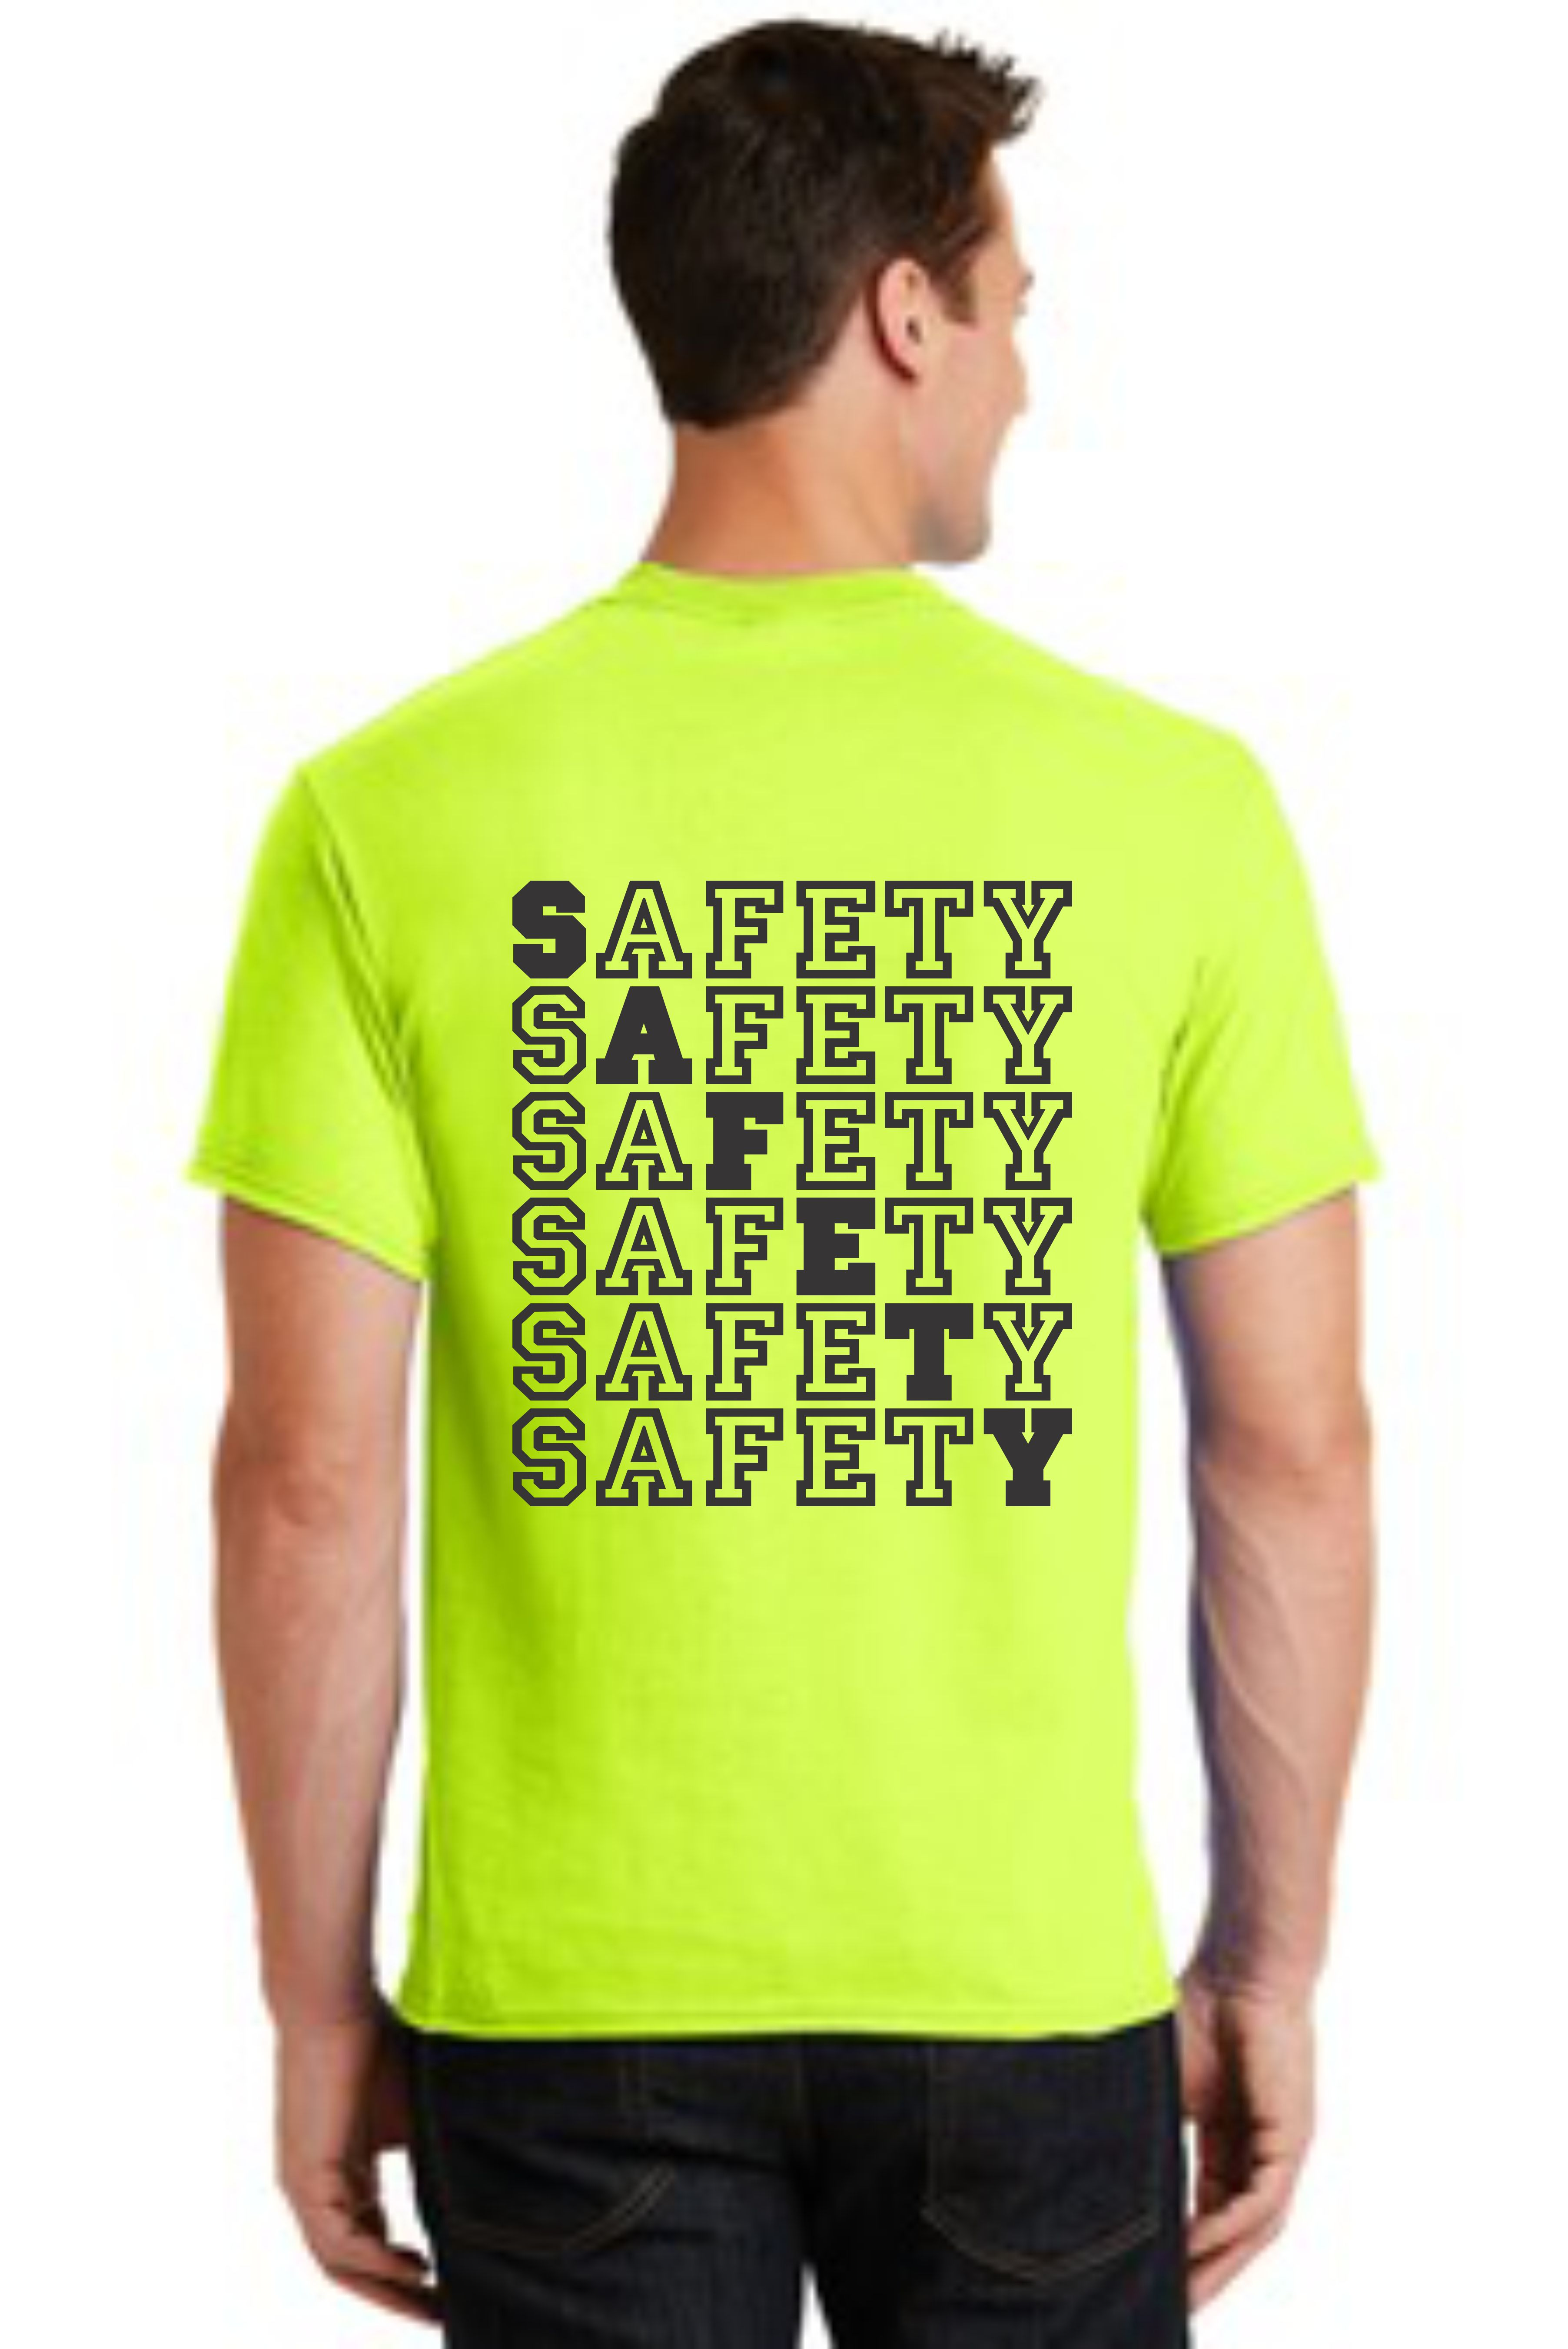 SAFETY T-SHIRT -- SAFETY